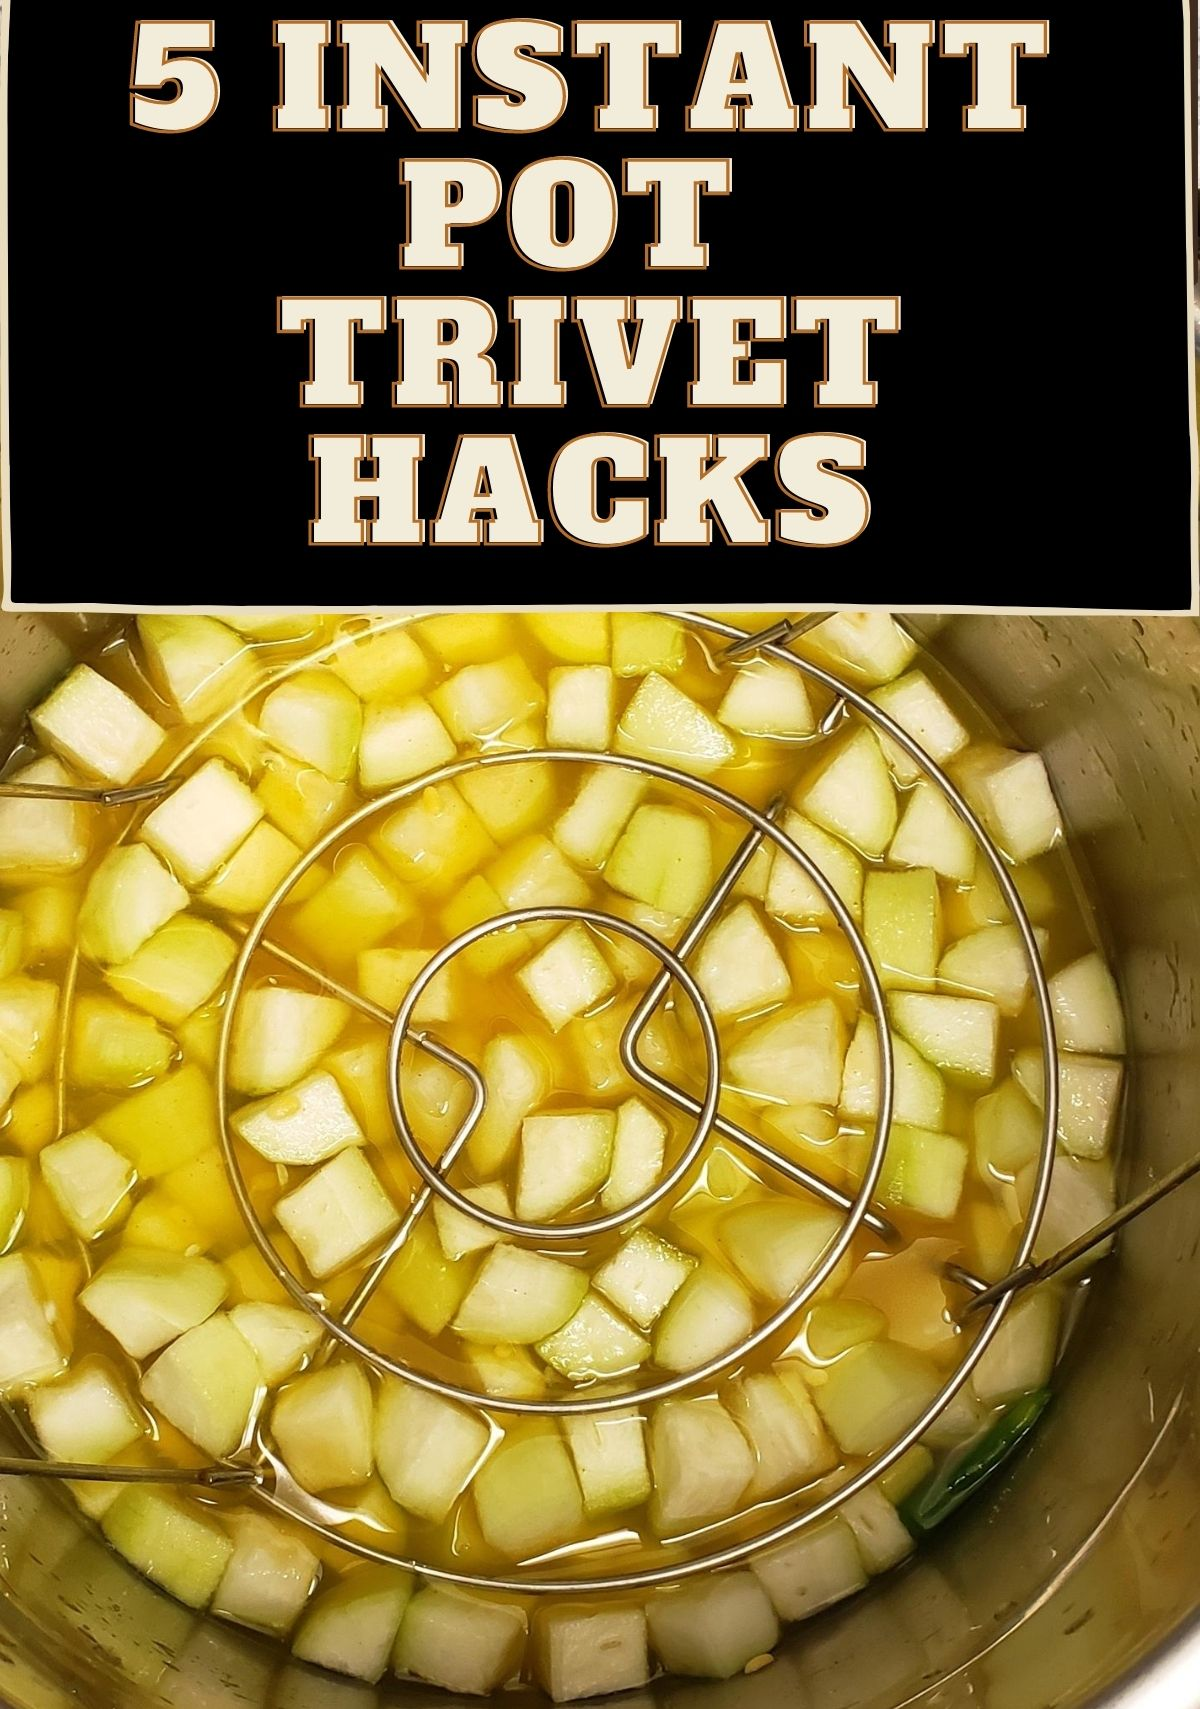 5 Instant Pot Trivet Hacks That Will Make Your Life Easier Instantpotindianmom